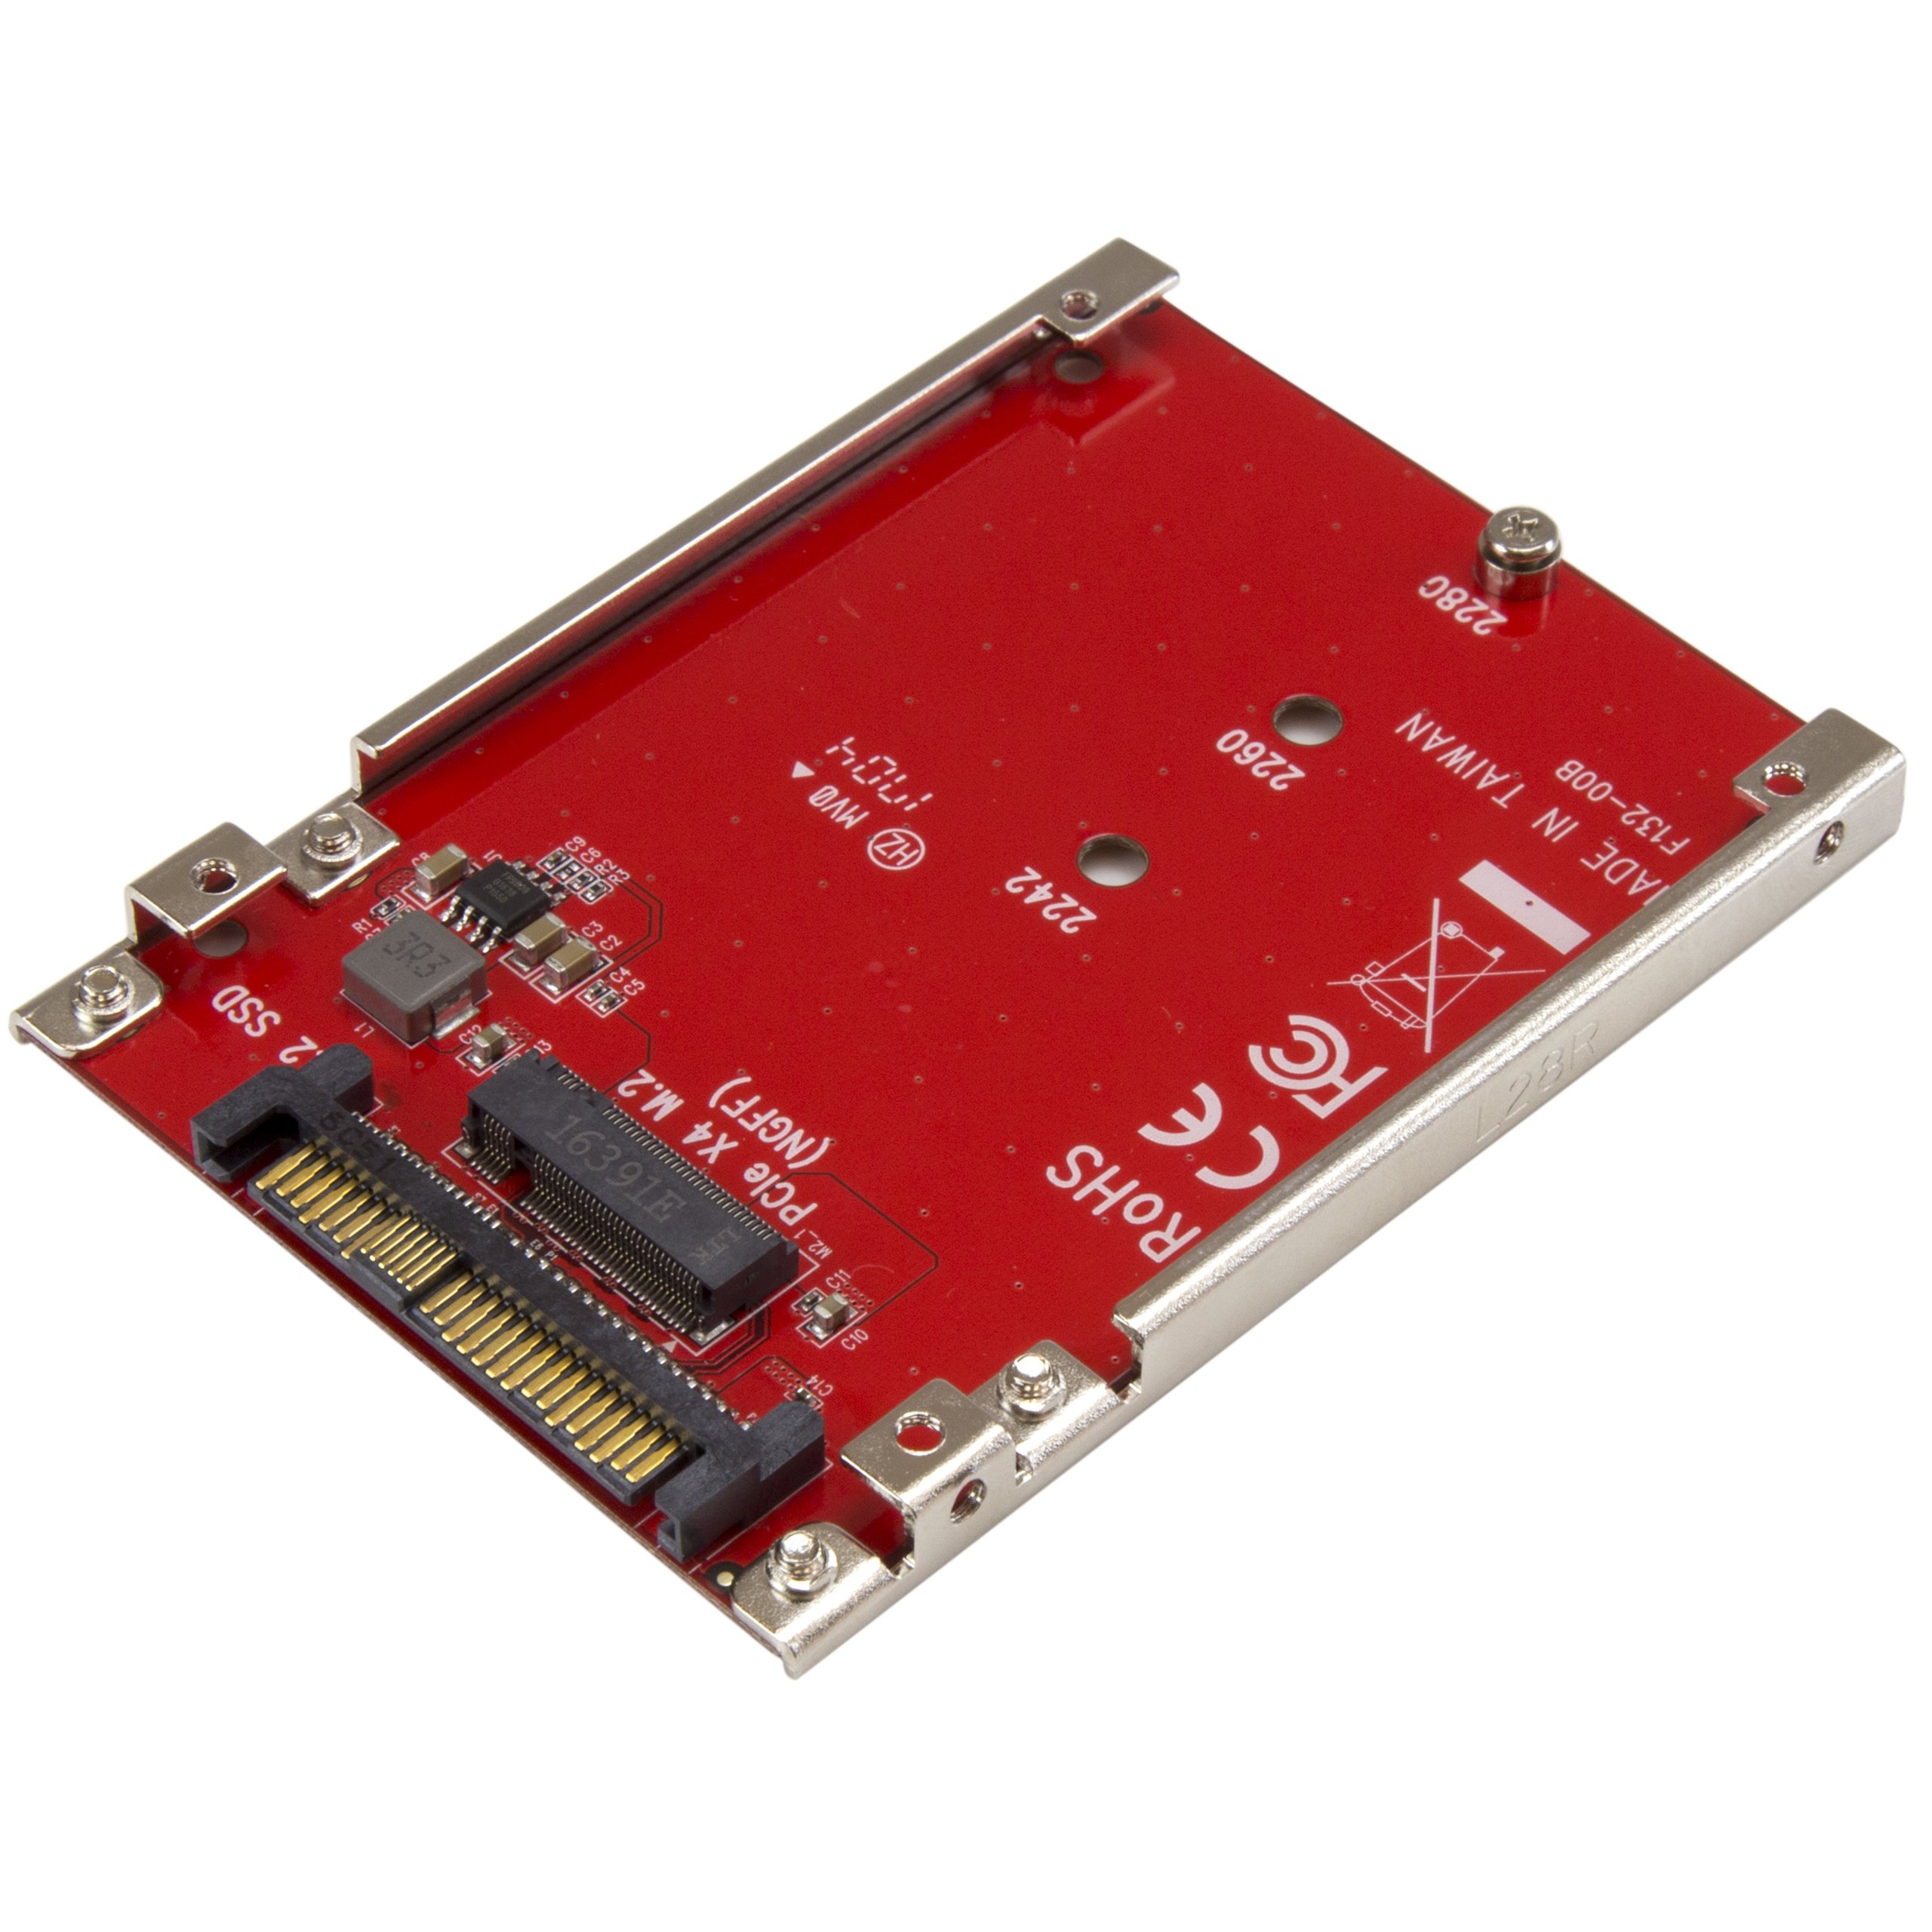 StarTech.com M.2 to U.2 Adapter - M.2 Drive to U.2 SFF-8639 Adapter - Works with M.2 PCIe NVMe Drives by StarTech (Image #1)